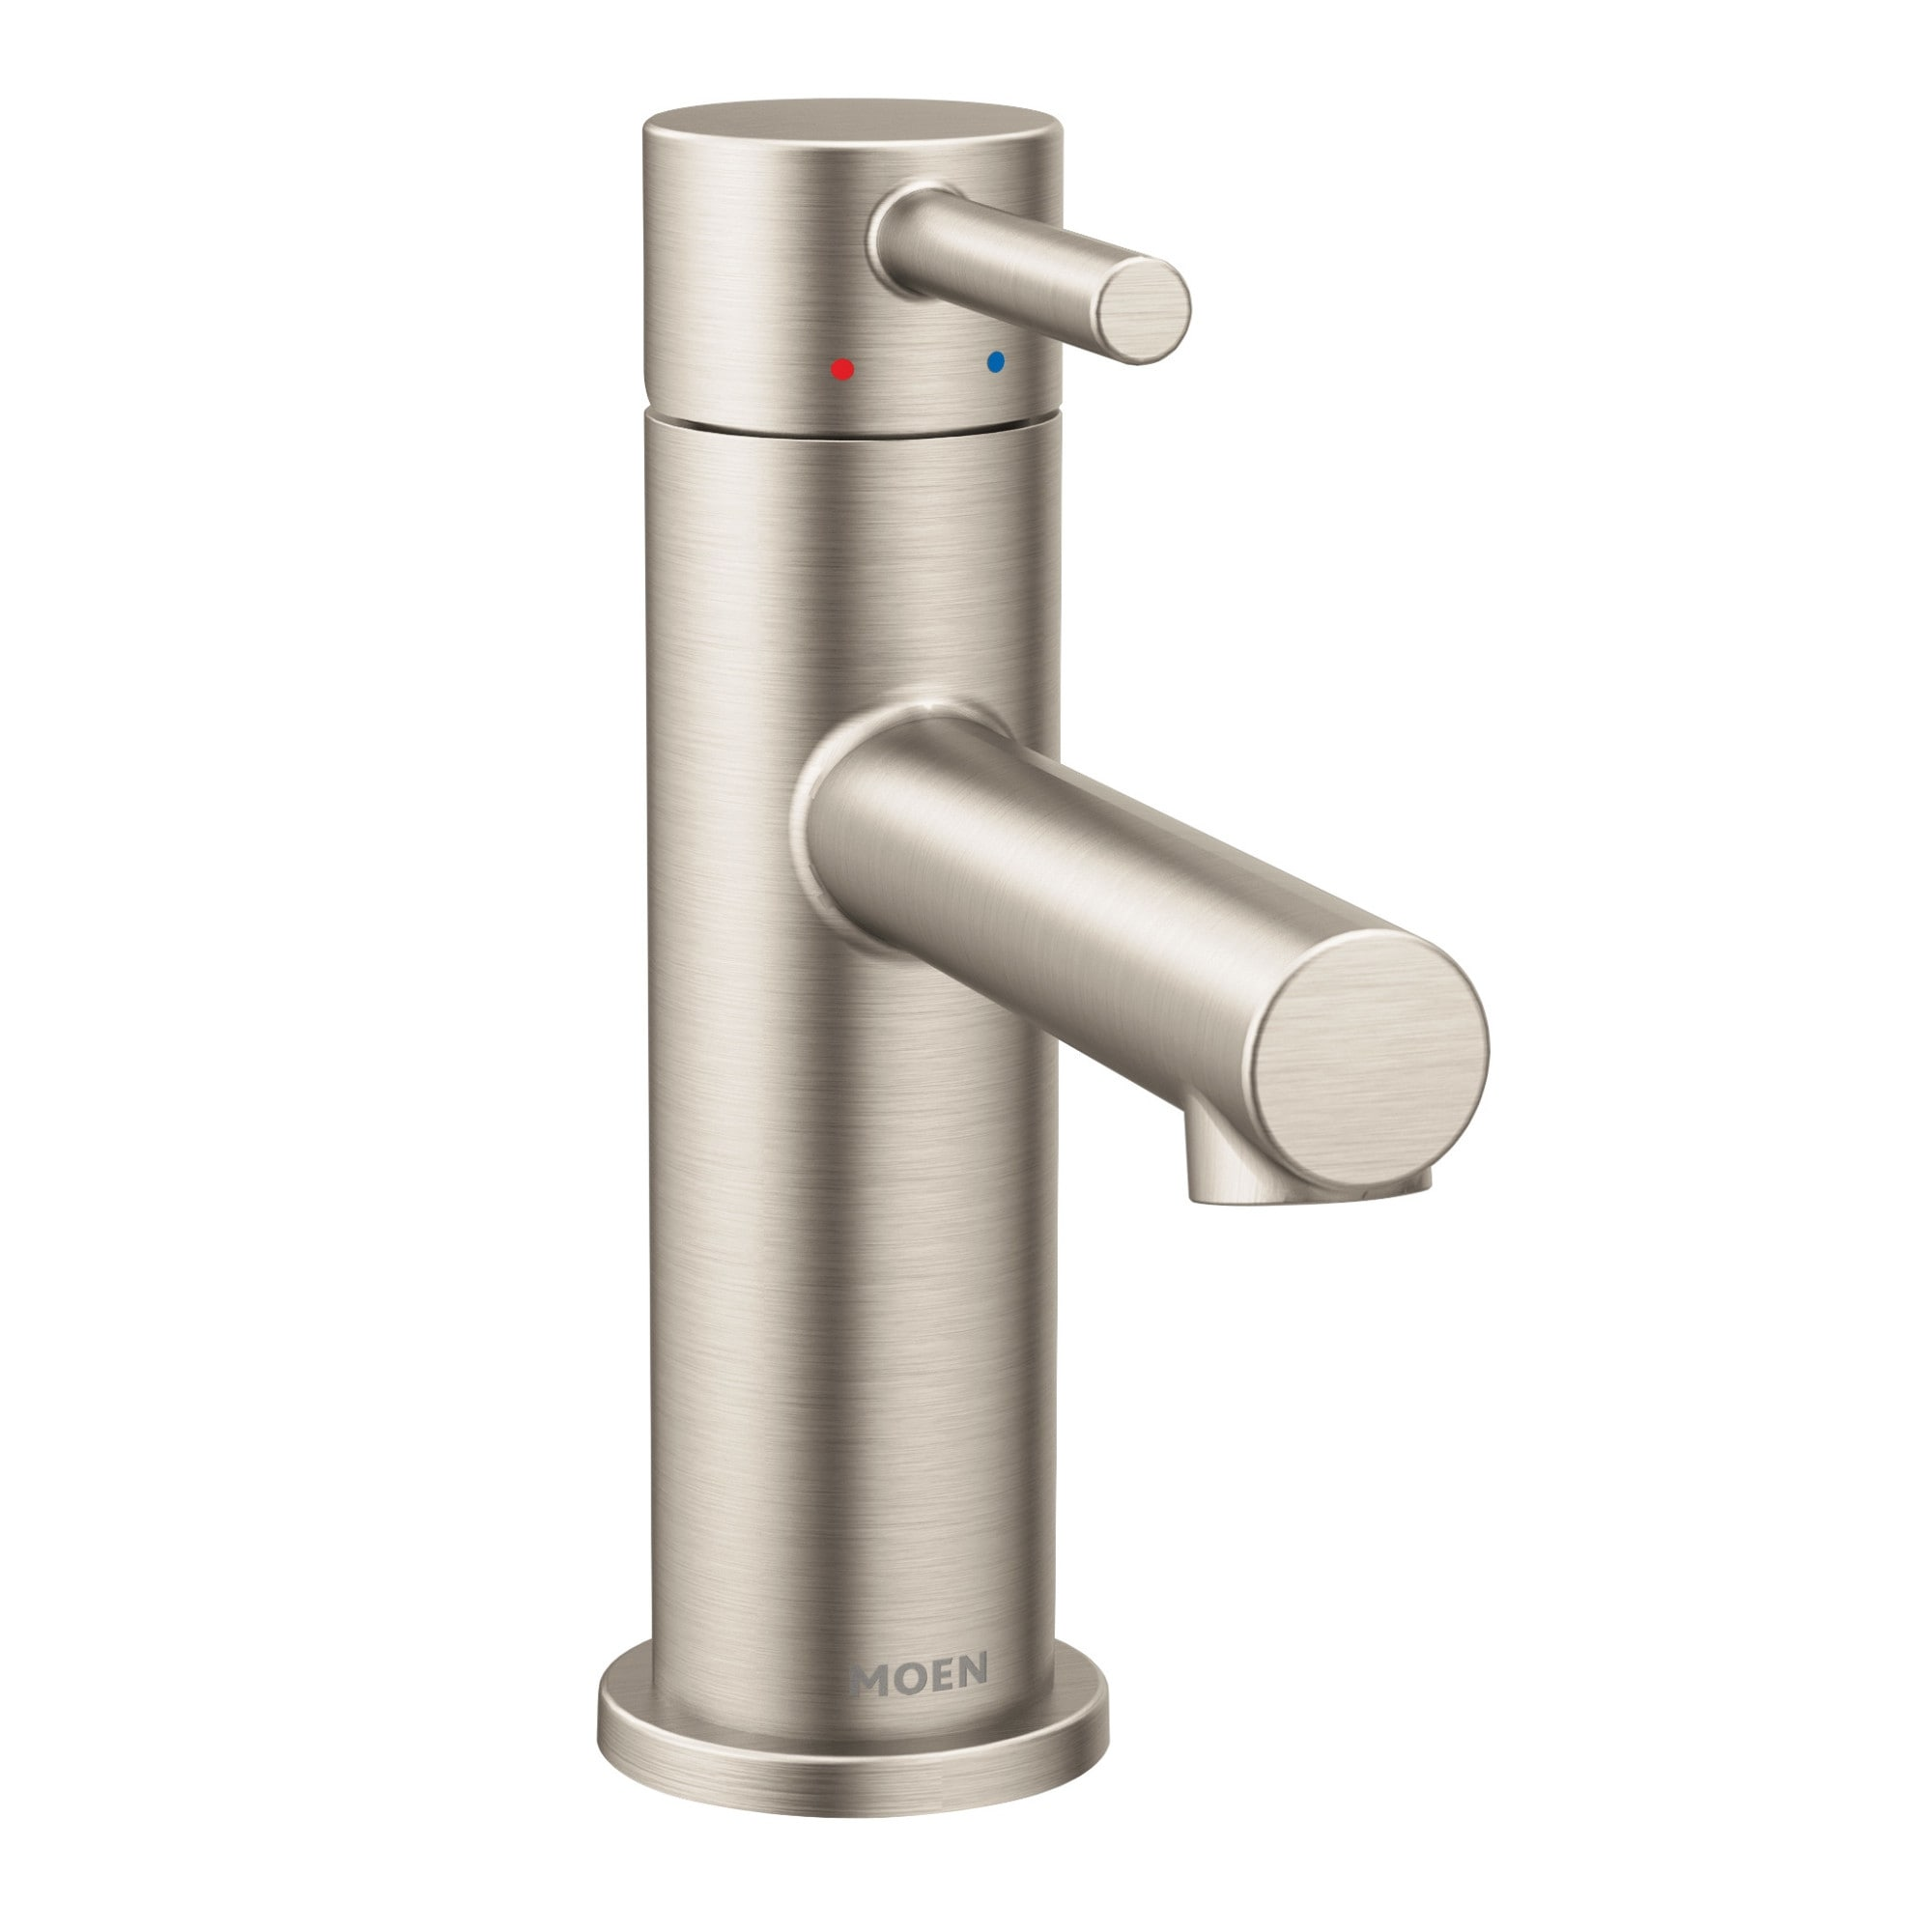 moen 6190 align 1 2 gpm single hole bathroom faucet with pop up drain